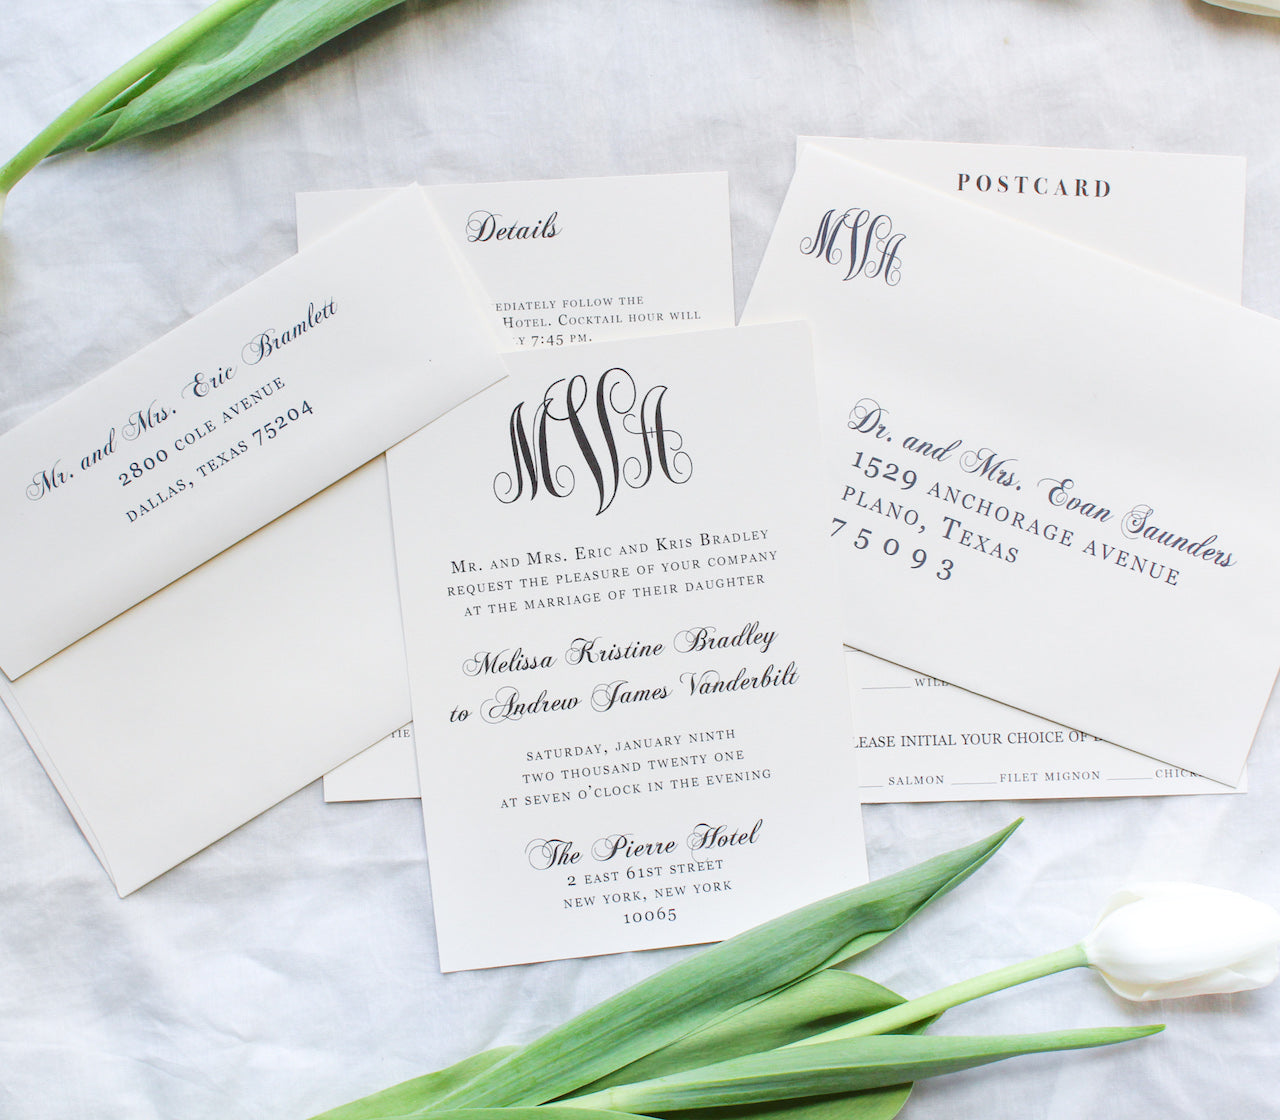 classic southern monogram wedding invitations sustainably printed on 100% recycled paper envelope